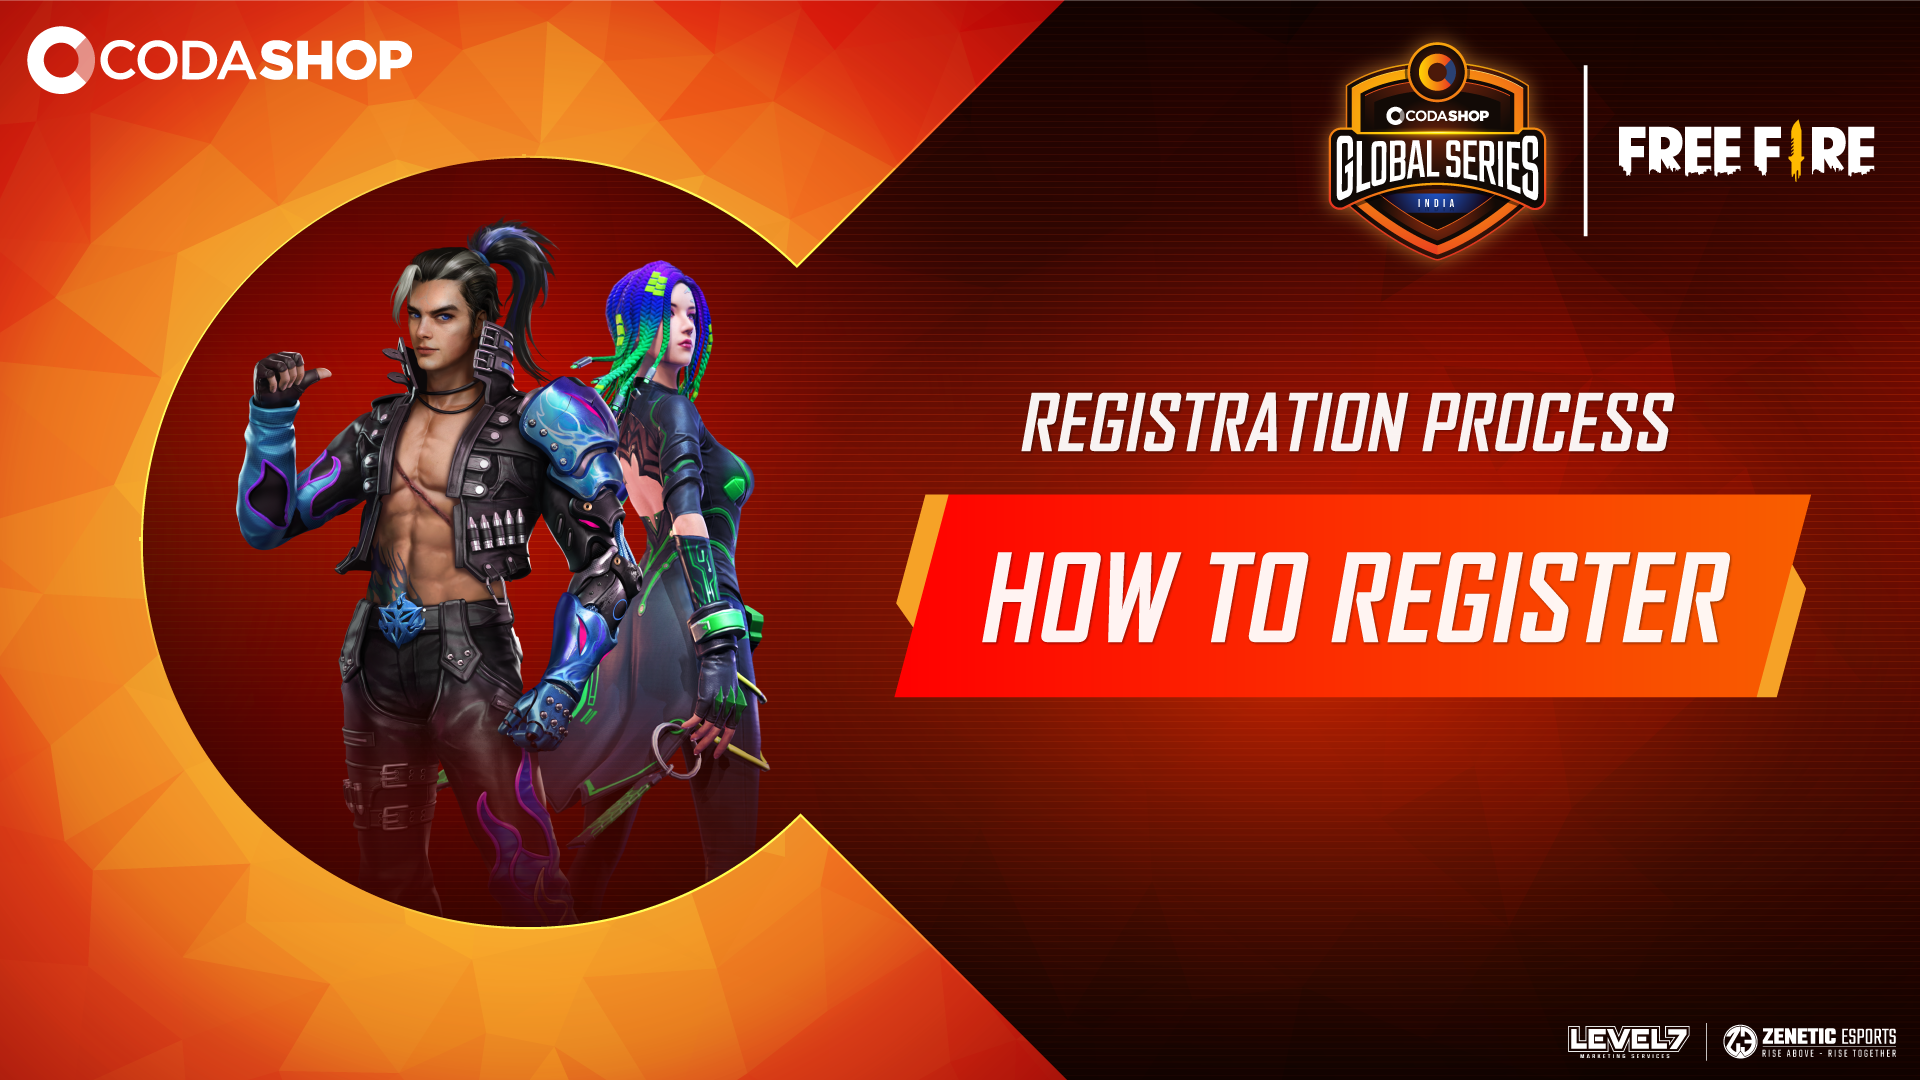 CGS-IND-FF-HOW-TO-Register.png